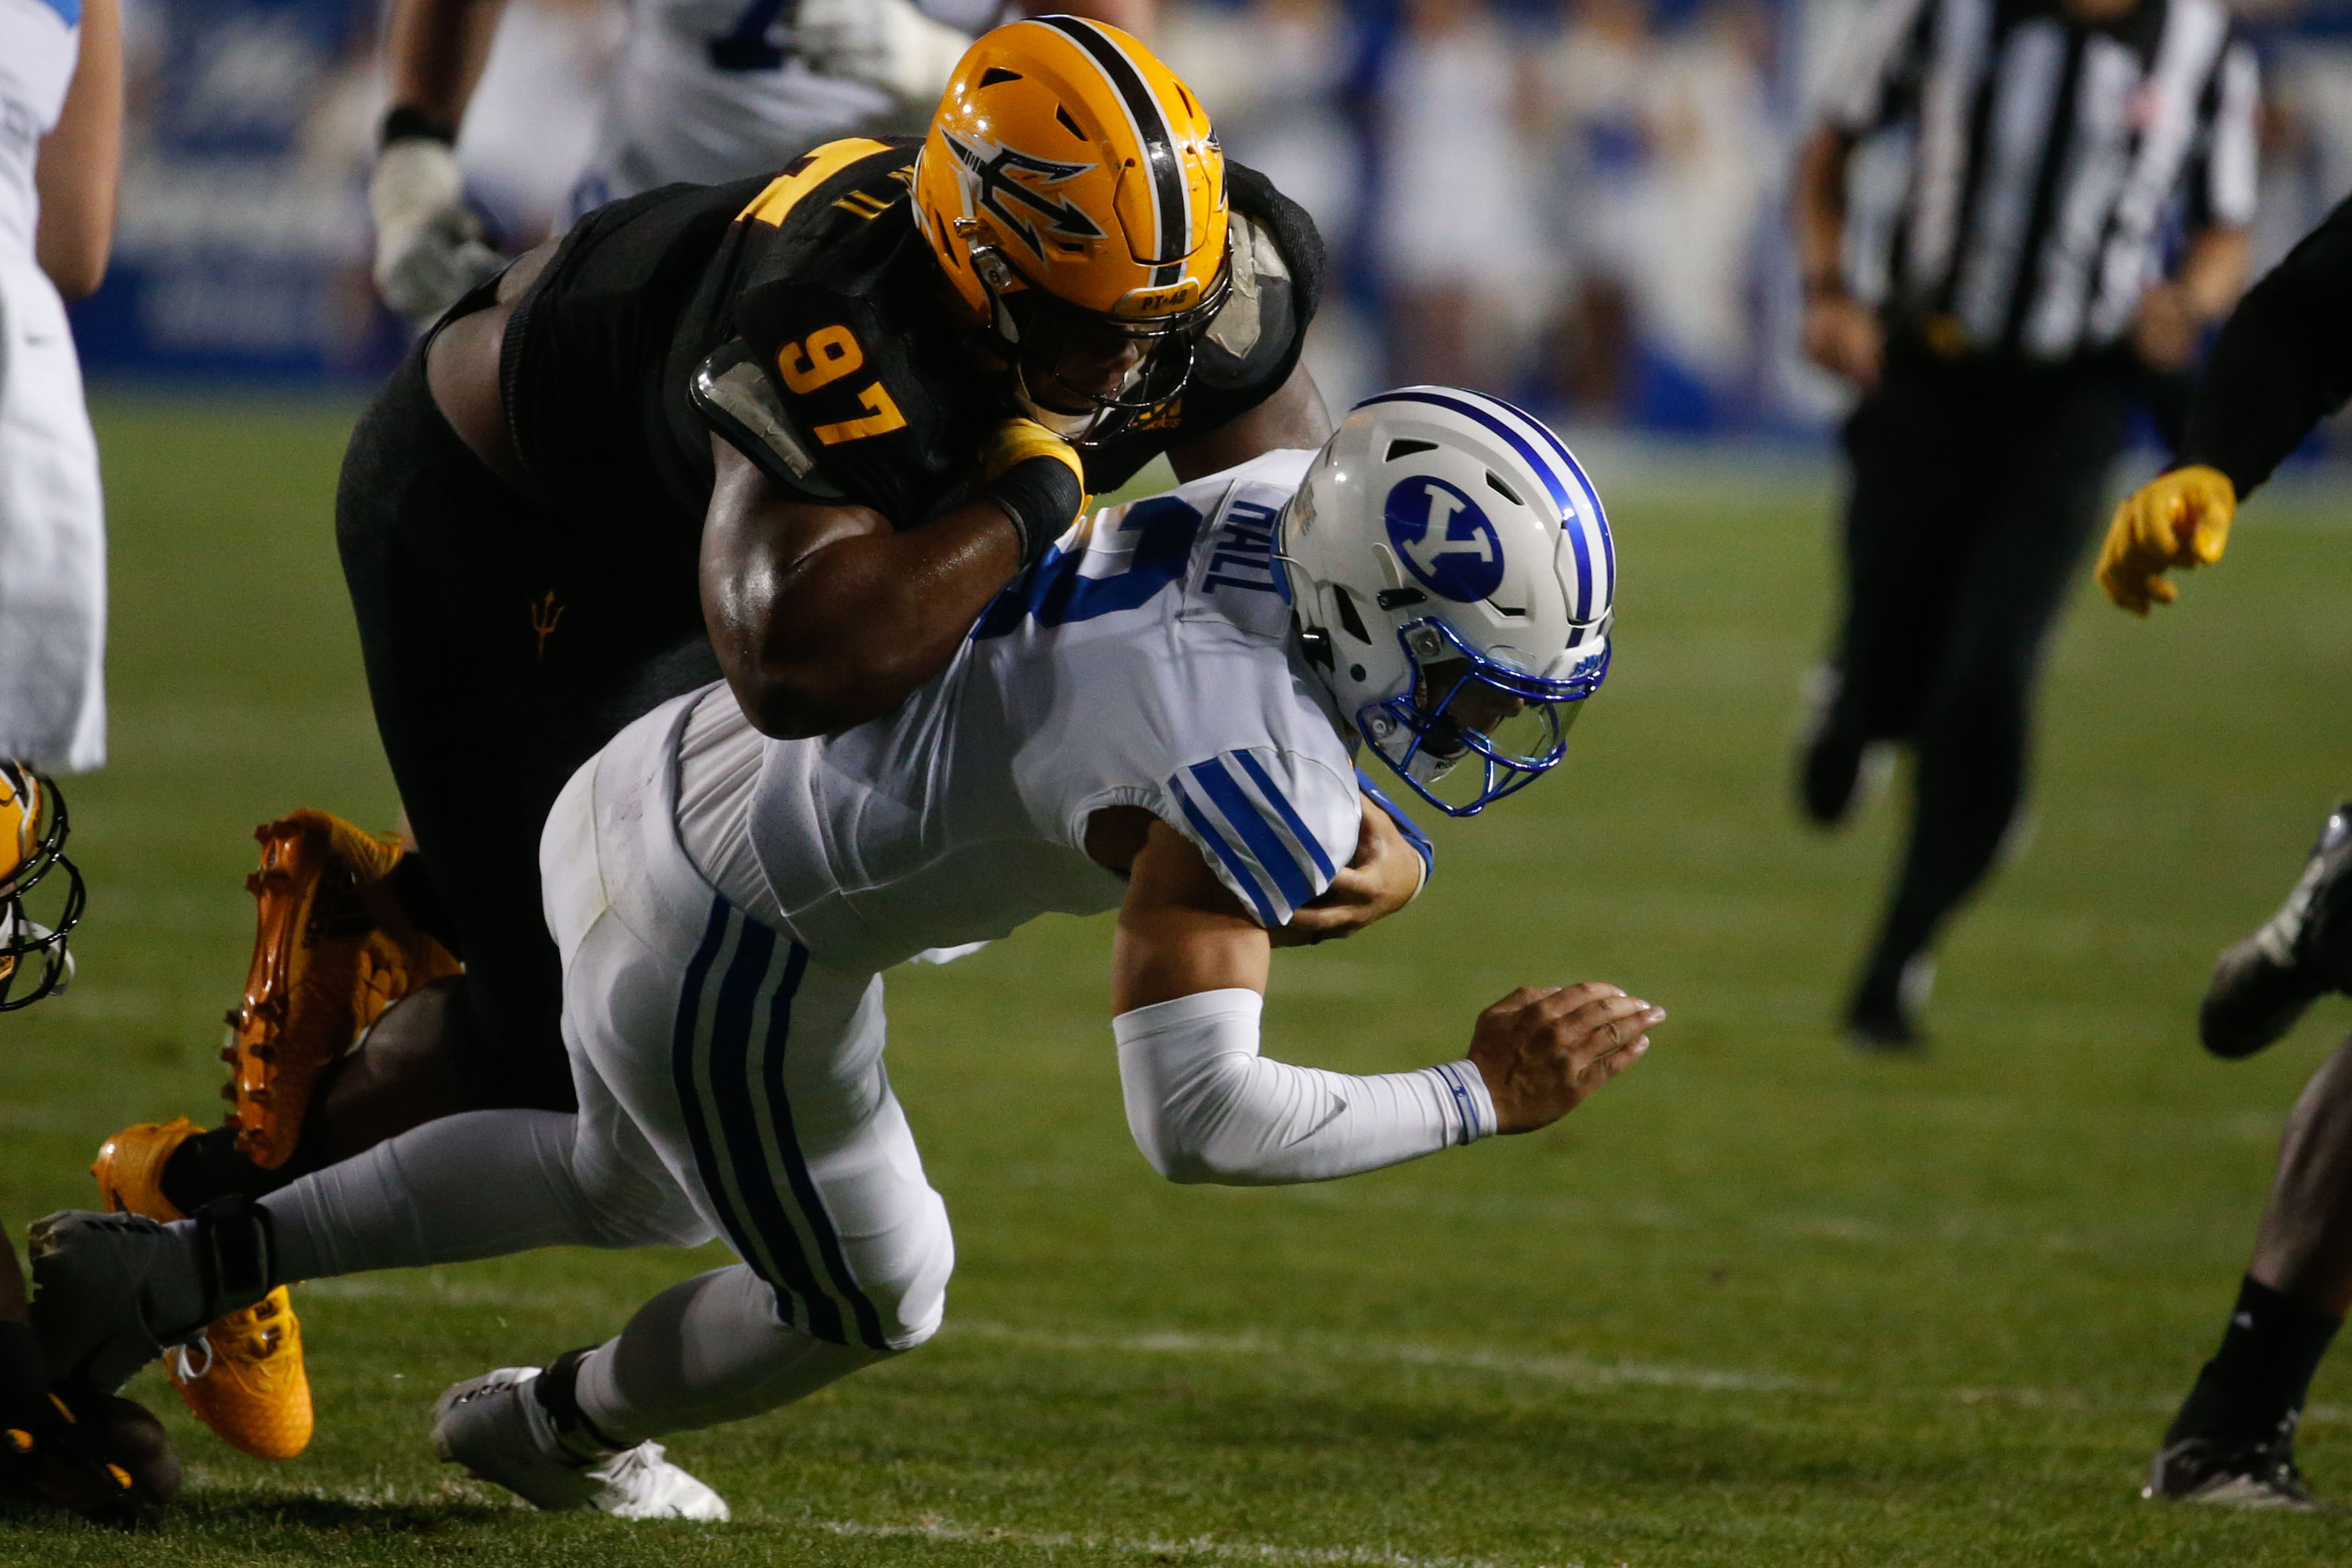 Brigham Young quarterback Jaren Hall, right, gets tackled by Arizona State defensive lineman Shannon Forman.